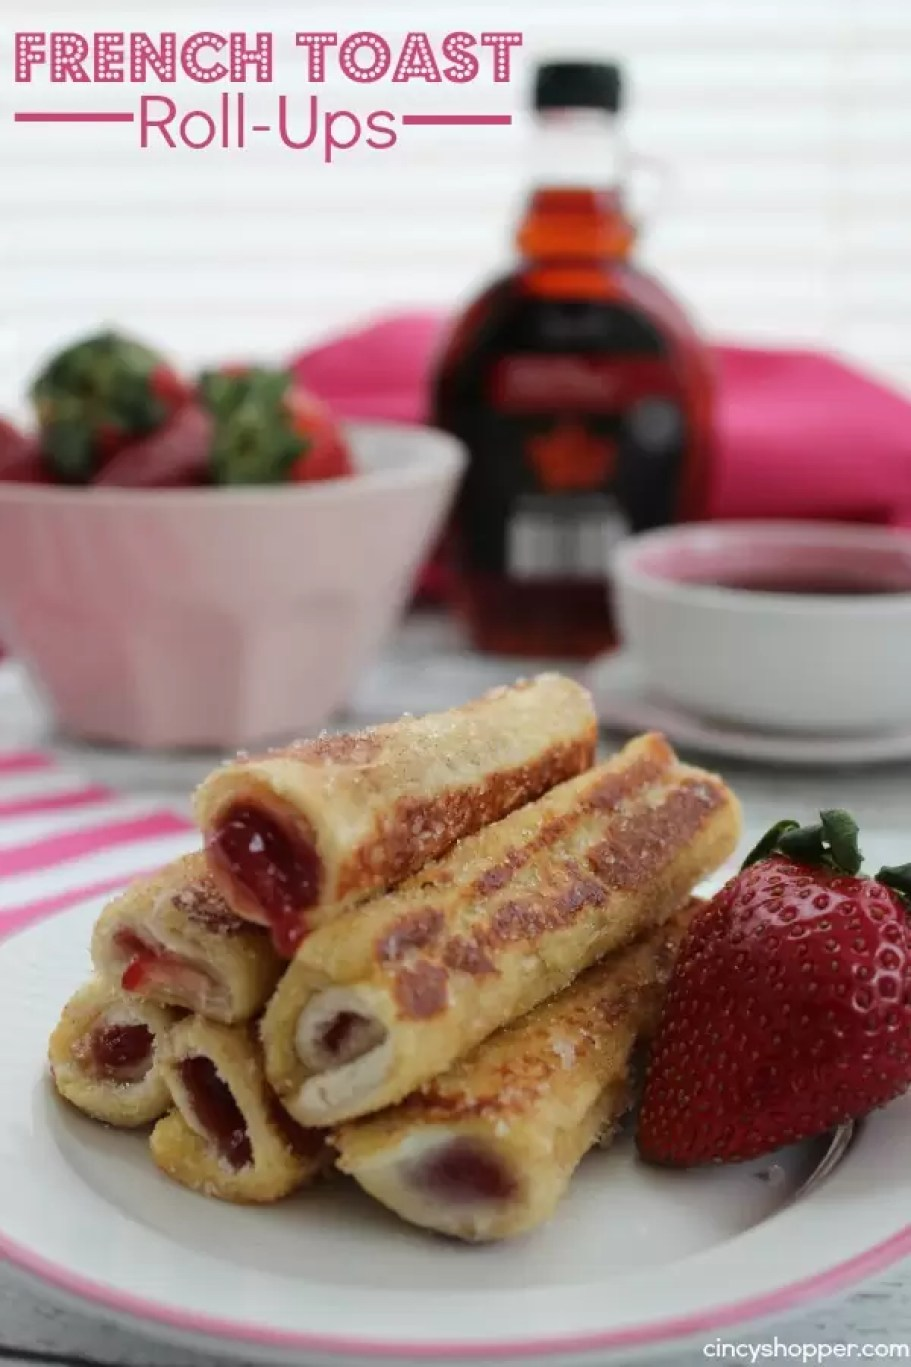 French Toast Roll Ups by Cincy Shopper